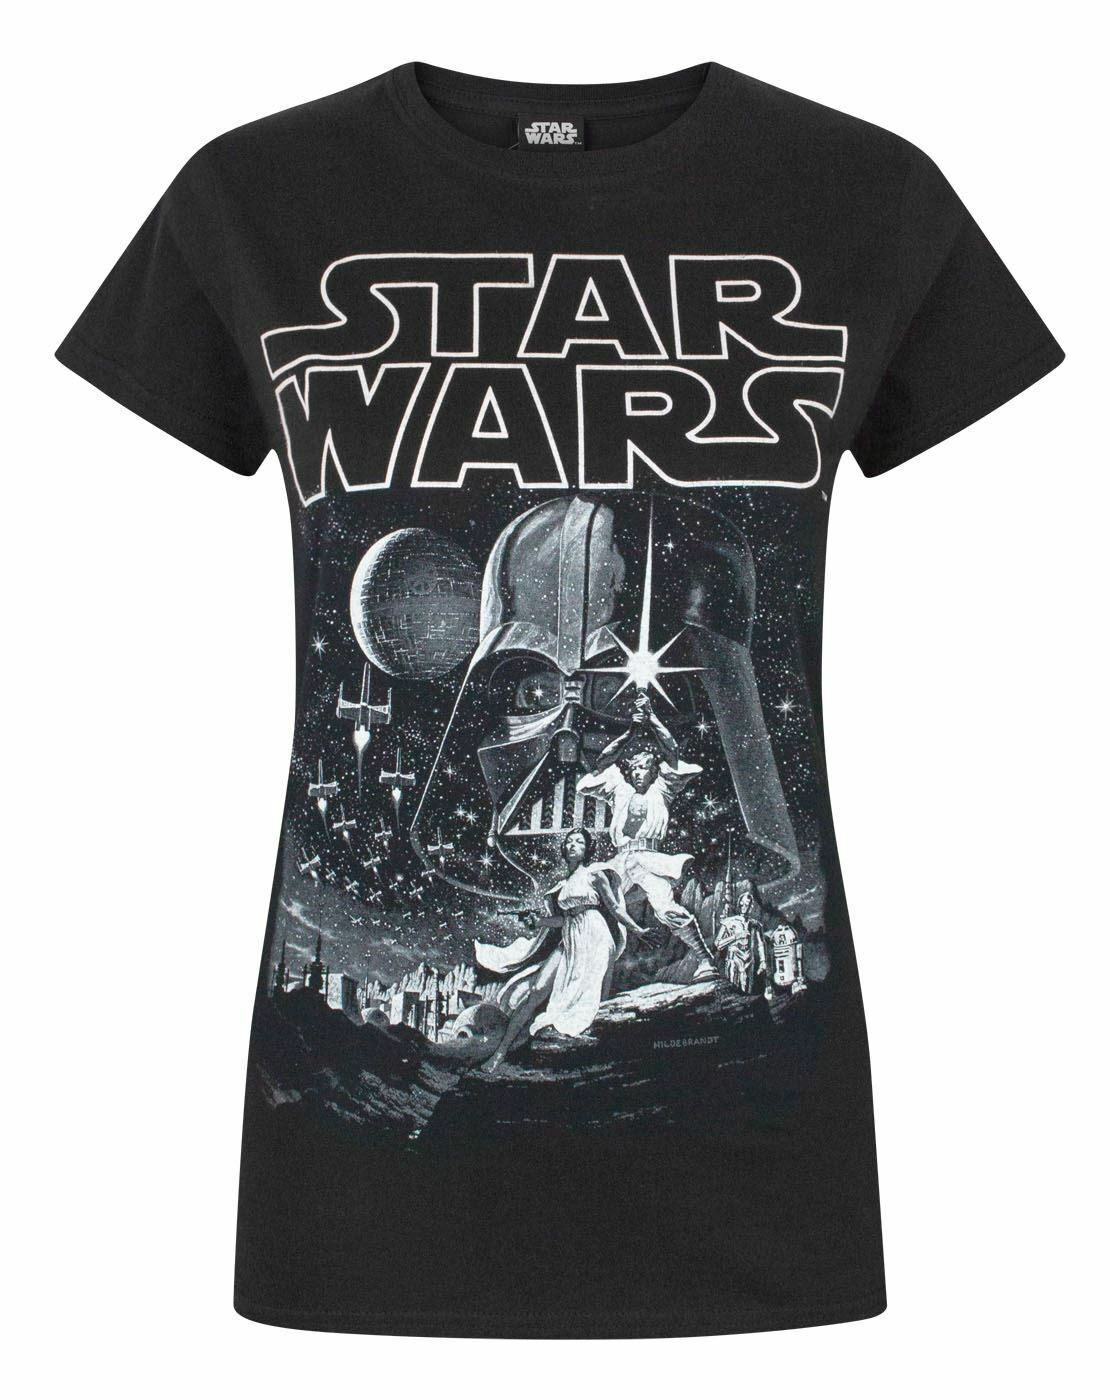 thumbnail 8 - Star-Wars-A-New-Hope-Poster-Women-039-s-Black-Tee-T-Shirt